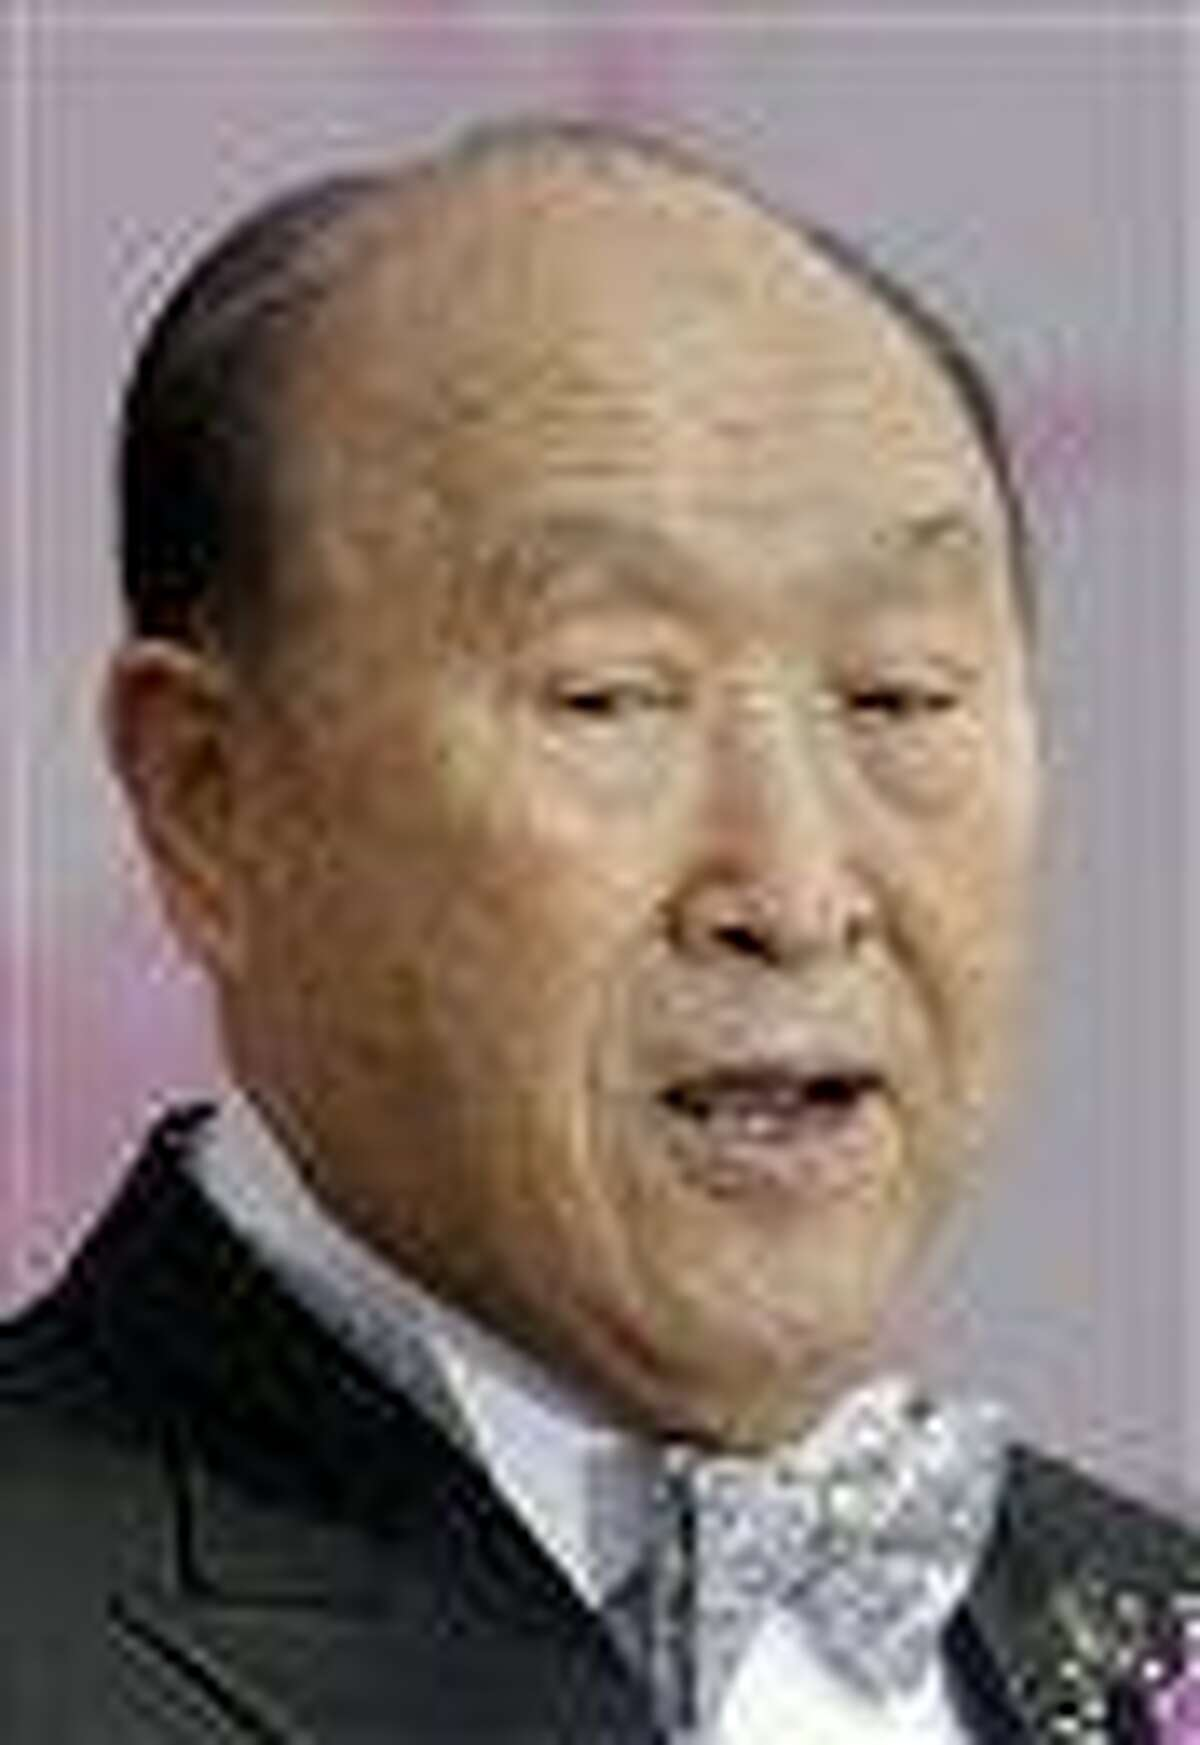 The Rev. Sun Myung Moon speaks during a mass wedding ceremony arranged by the church at Sun Moon University in Asan. AP Photo